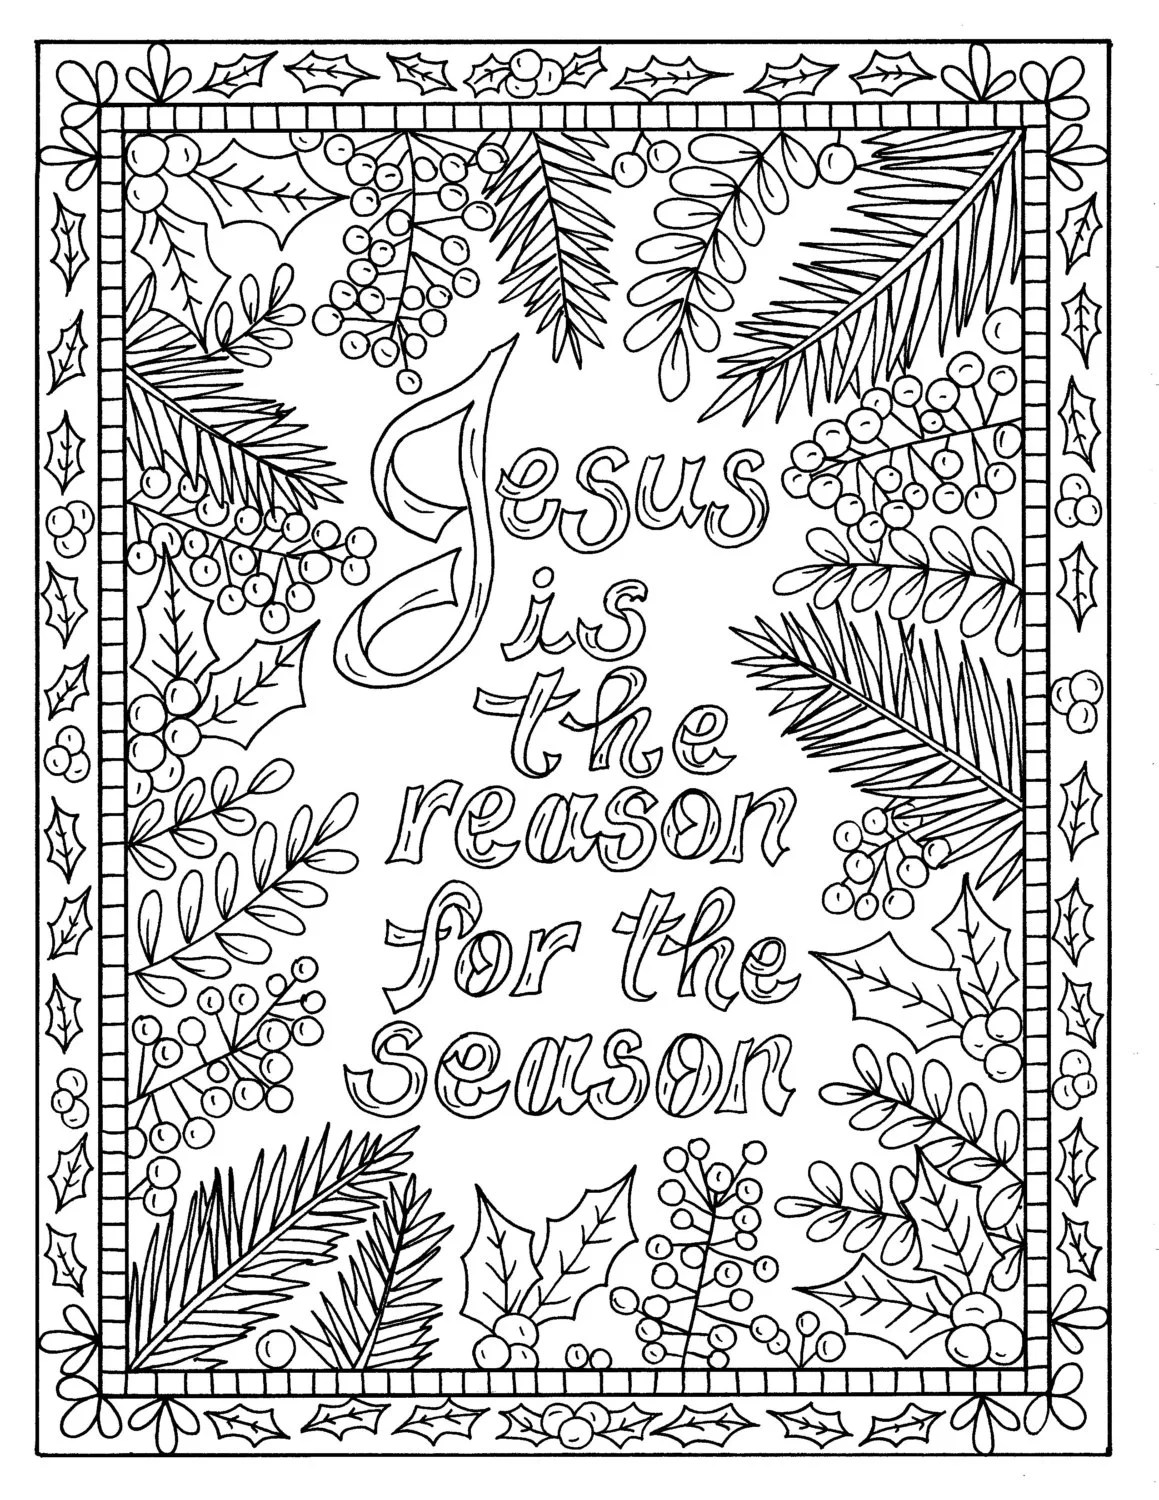 5 Christian Coloring Pages for Christmas Color Book Digital | christmas colouring pages for adults